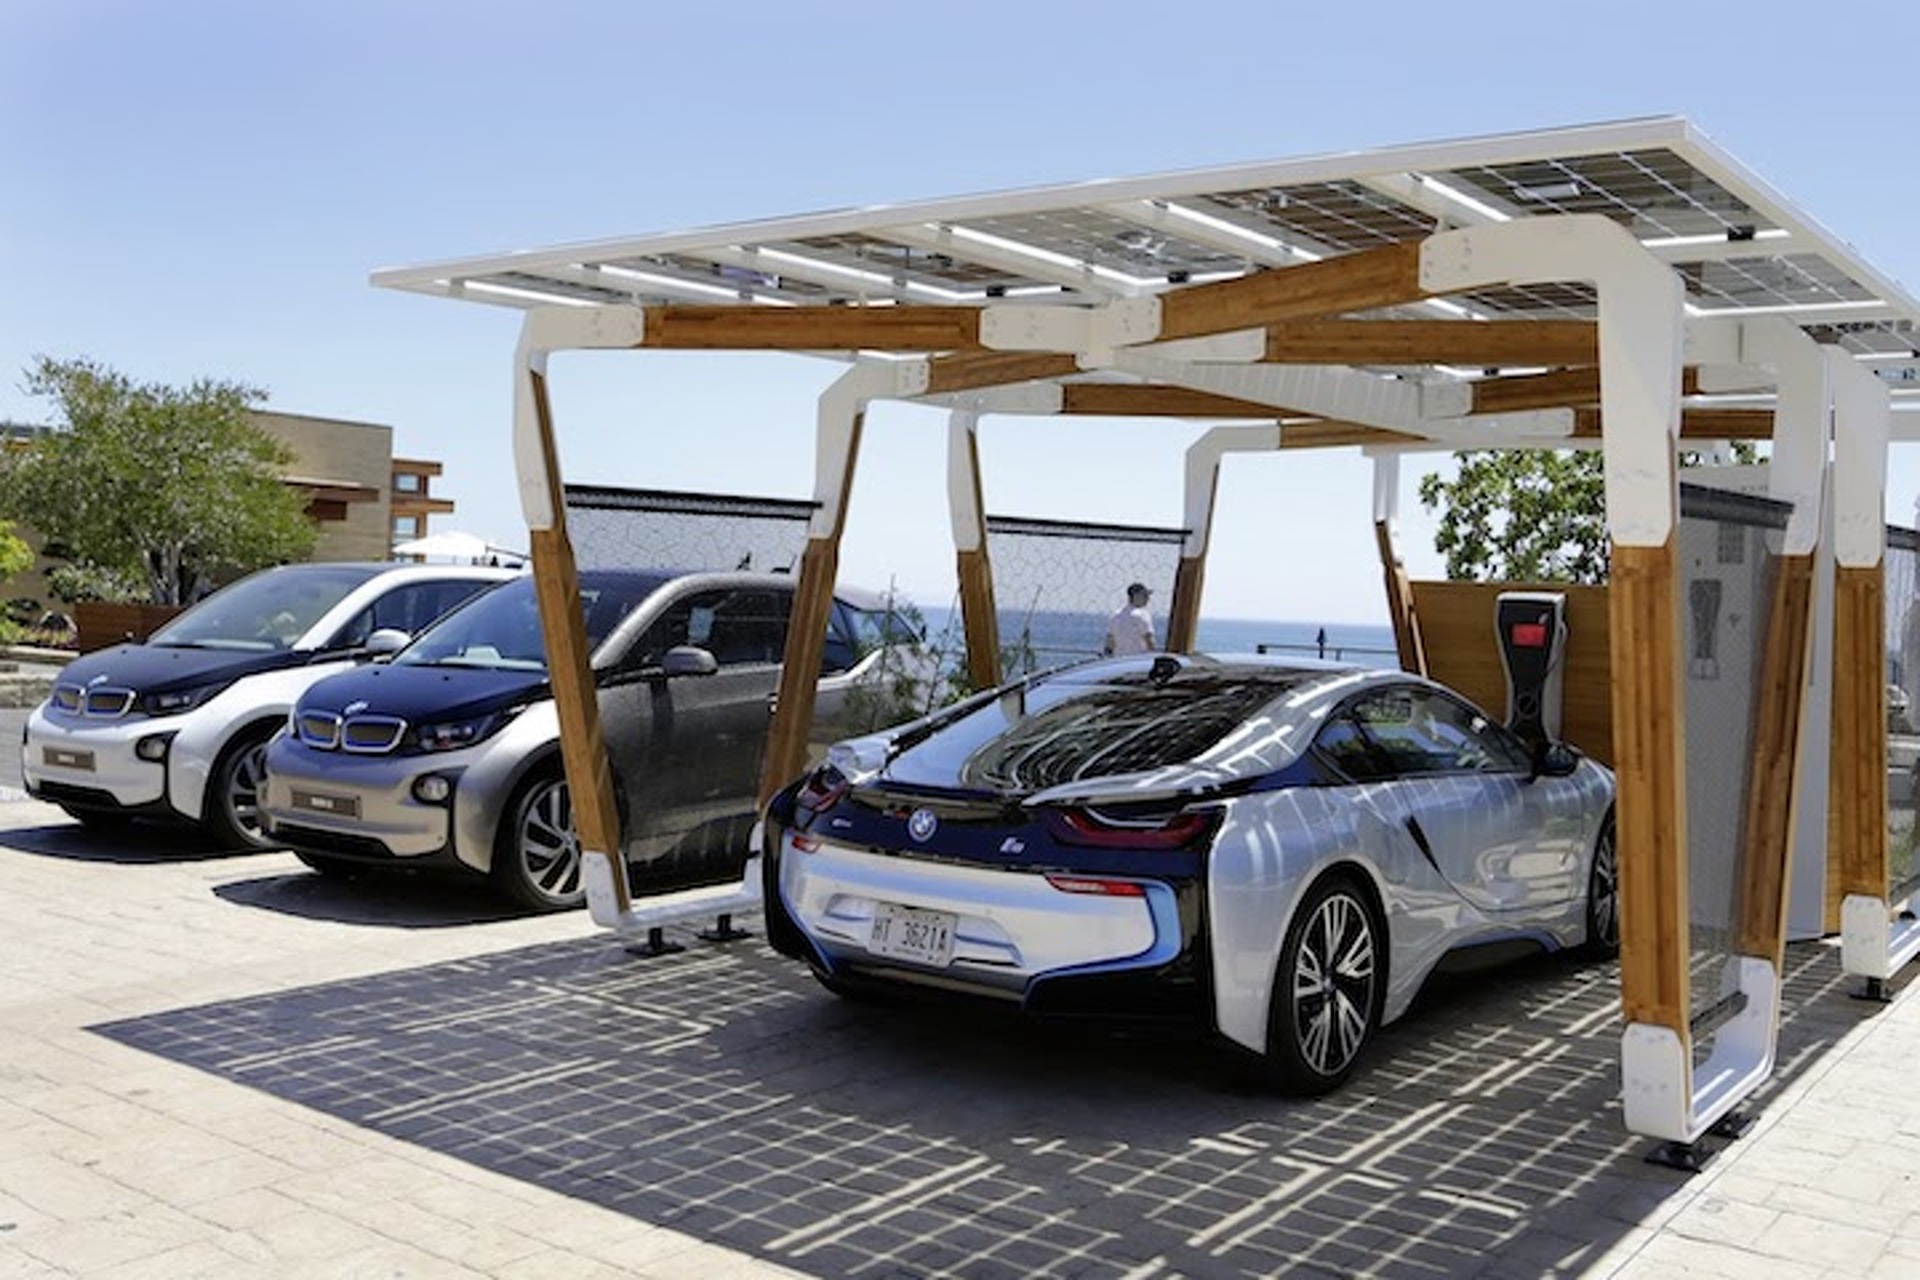 BMW Solar Charging Stations Could Be the (Heat) Wave of the Future